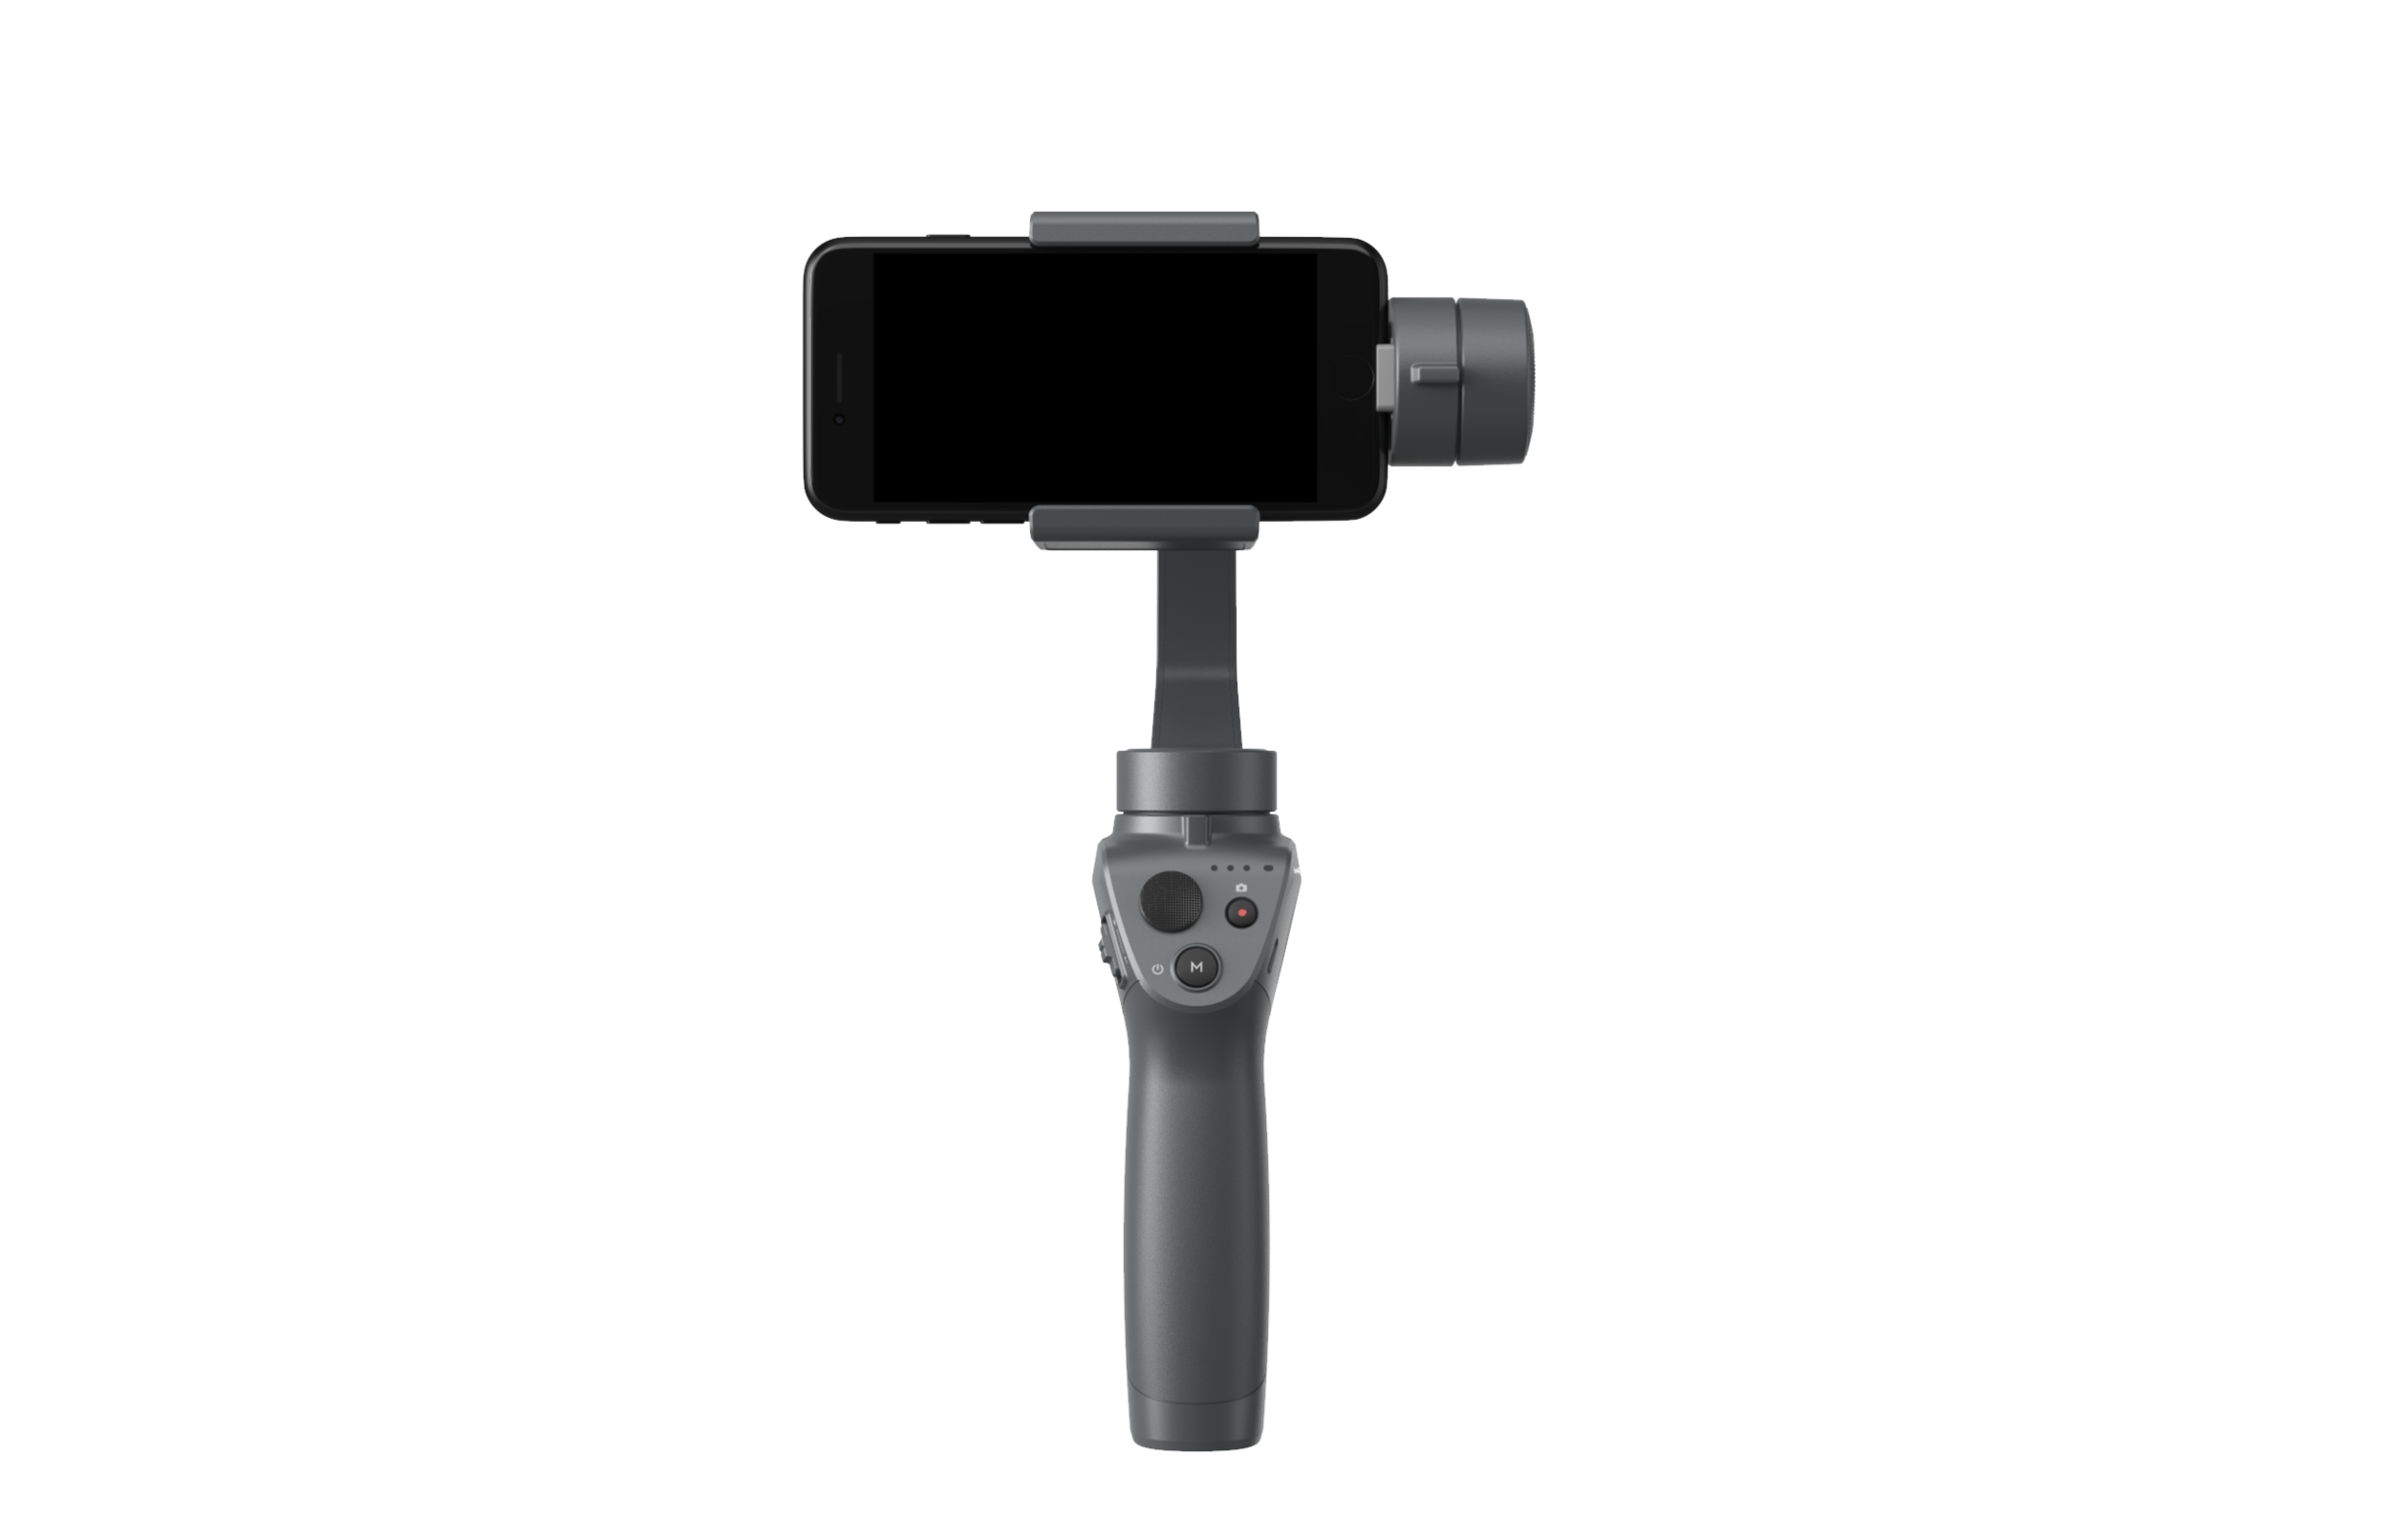 Osmo Mobile 2_product 6.png